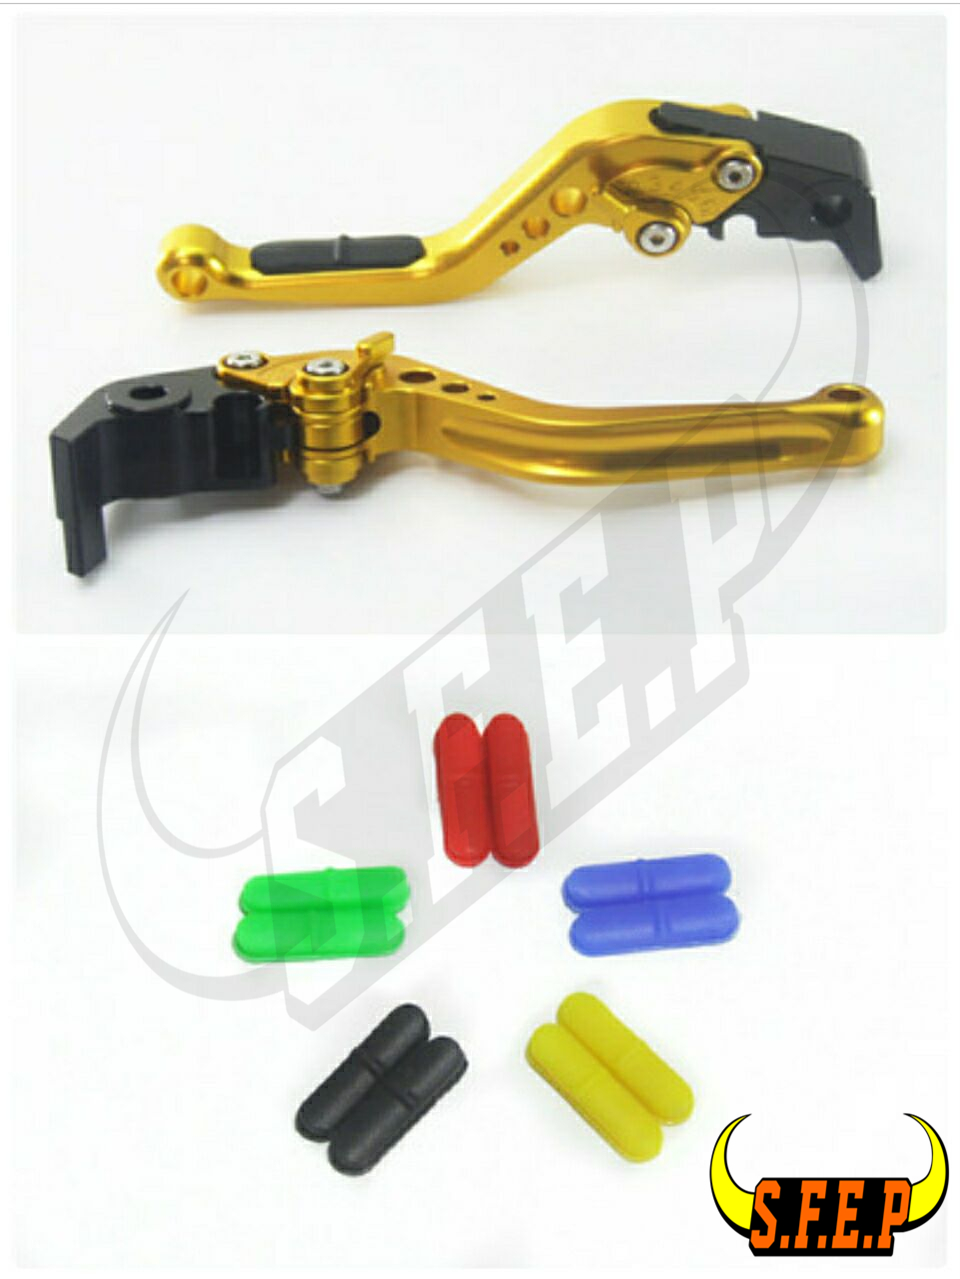 CNC Adjustable Motorcycle Brake and Clutch Levers with Anti-Slip For Honda VT750 Phantom/Shadow 2010-2017